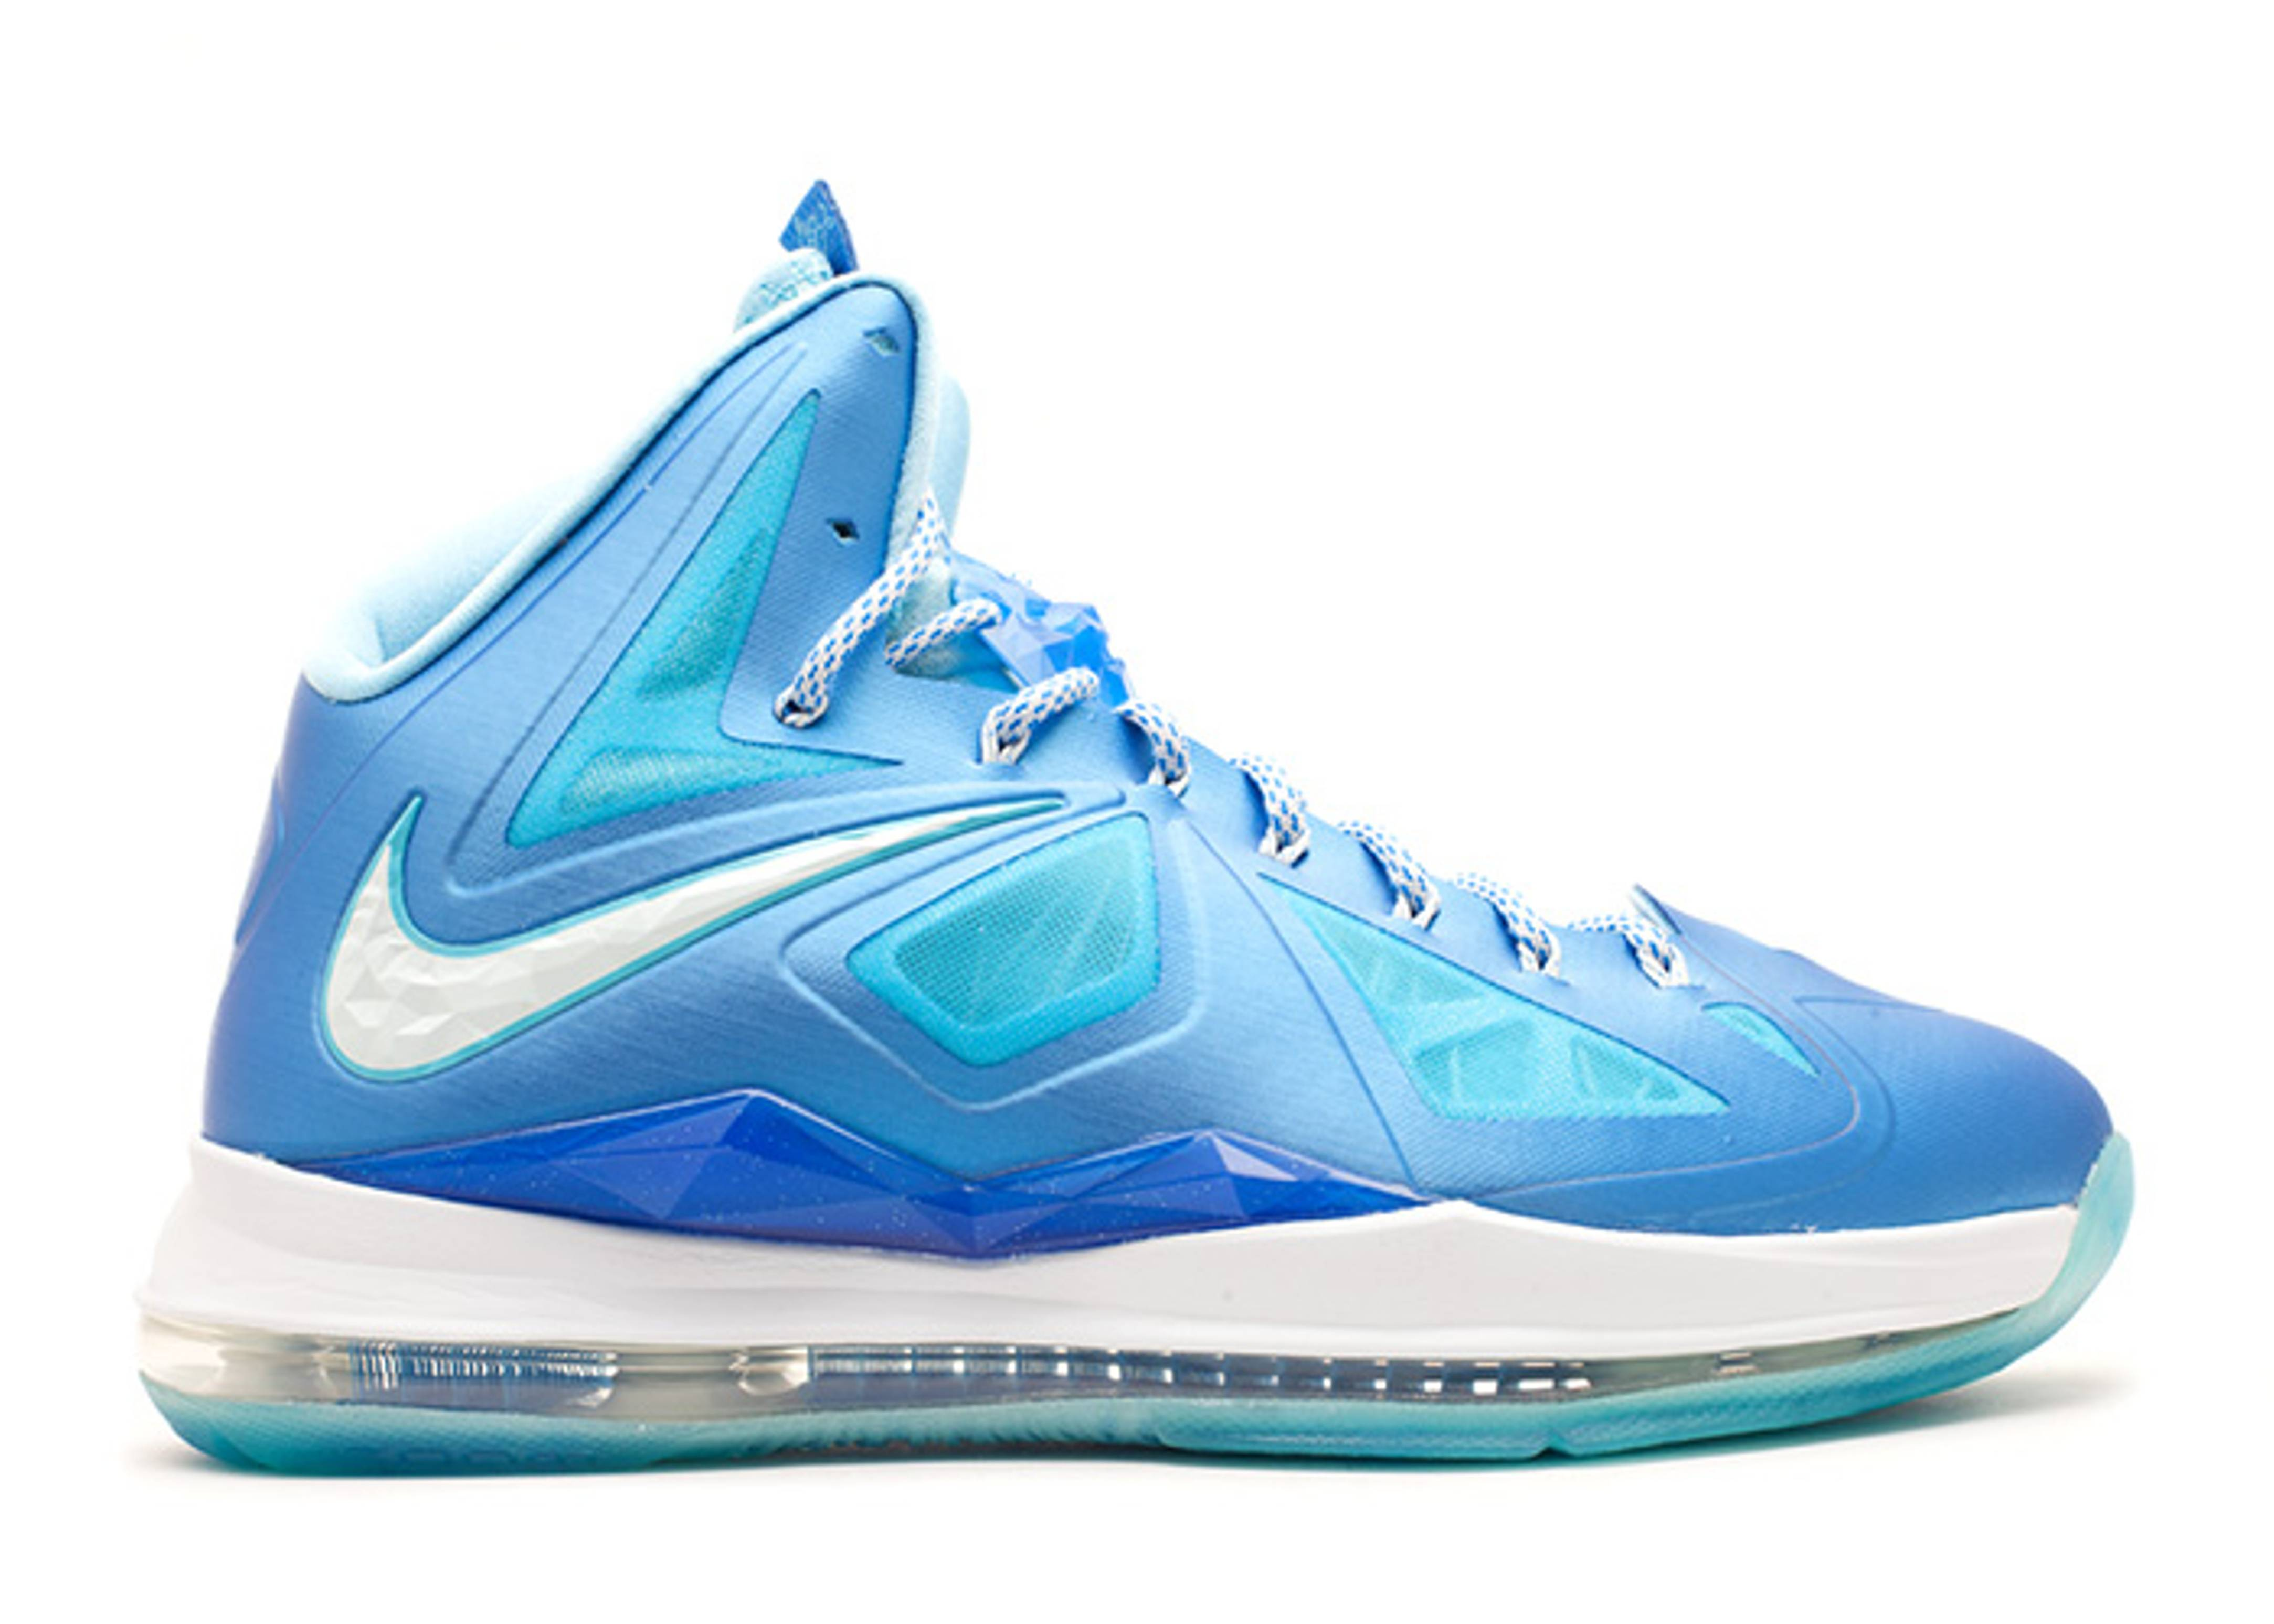 4b81f2f21752 ... clearance lebron 10 blue diamond without sport pack 466d5 d9012  clearance lebron 10 blue diamond without sport pack 466d5 d9012  low cost nike  kobe 9 ...